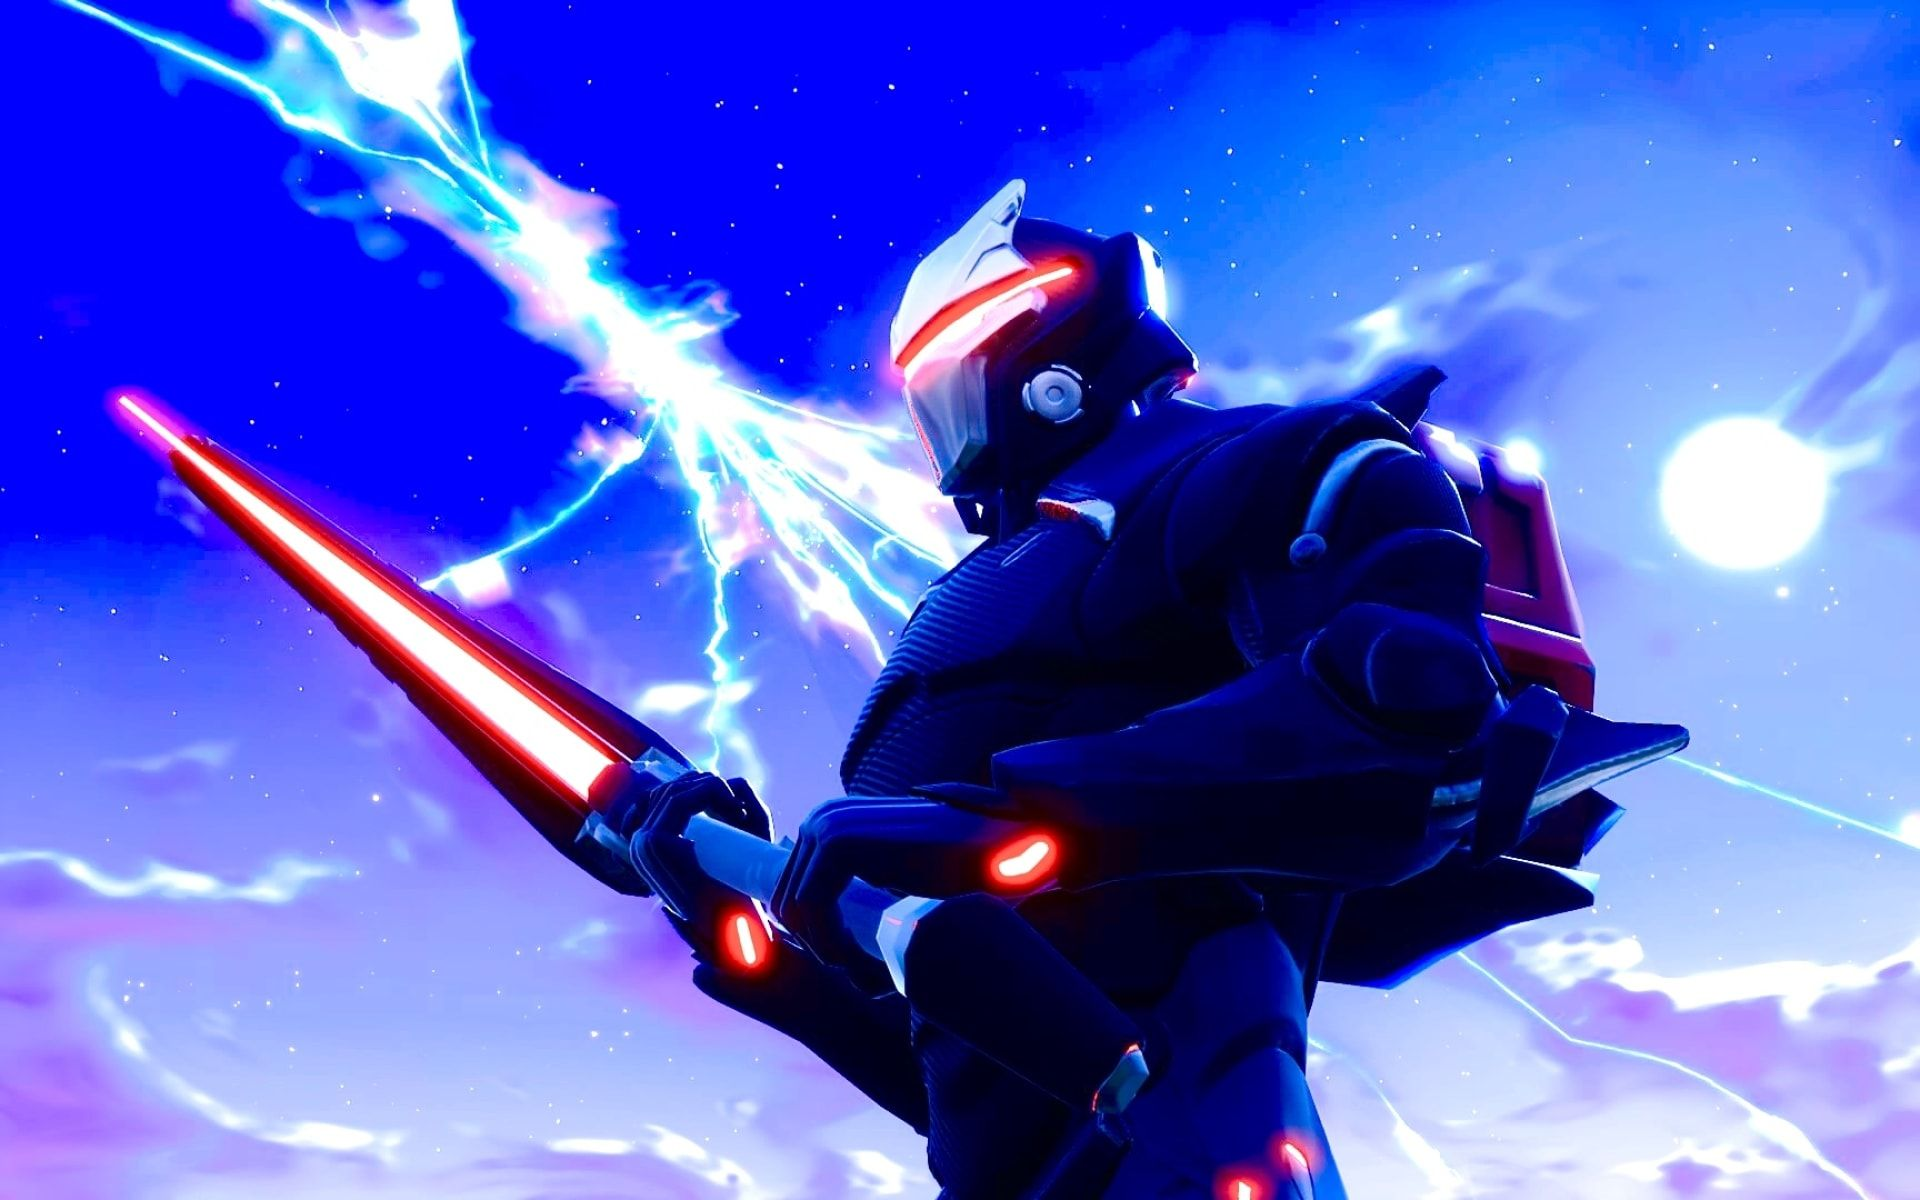 Omega Sword Warrior Fortnite Gaming wallpapers, Epic